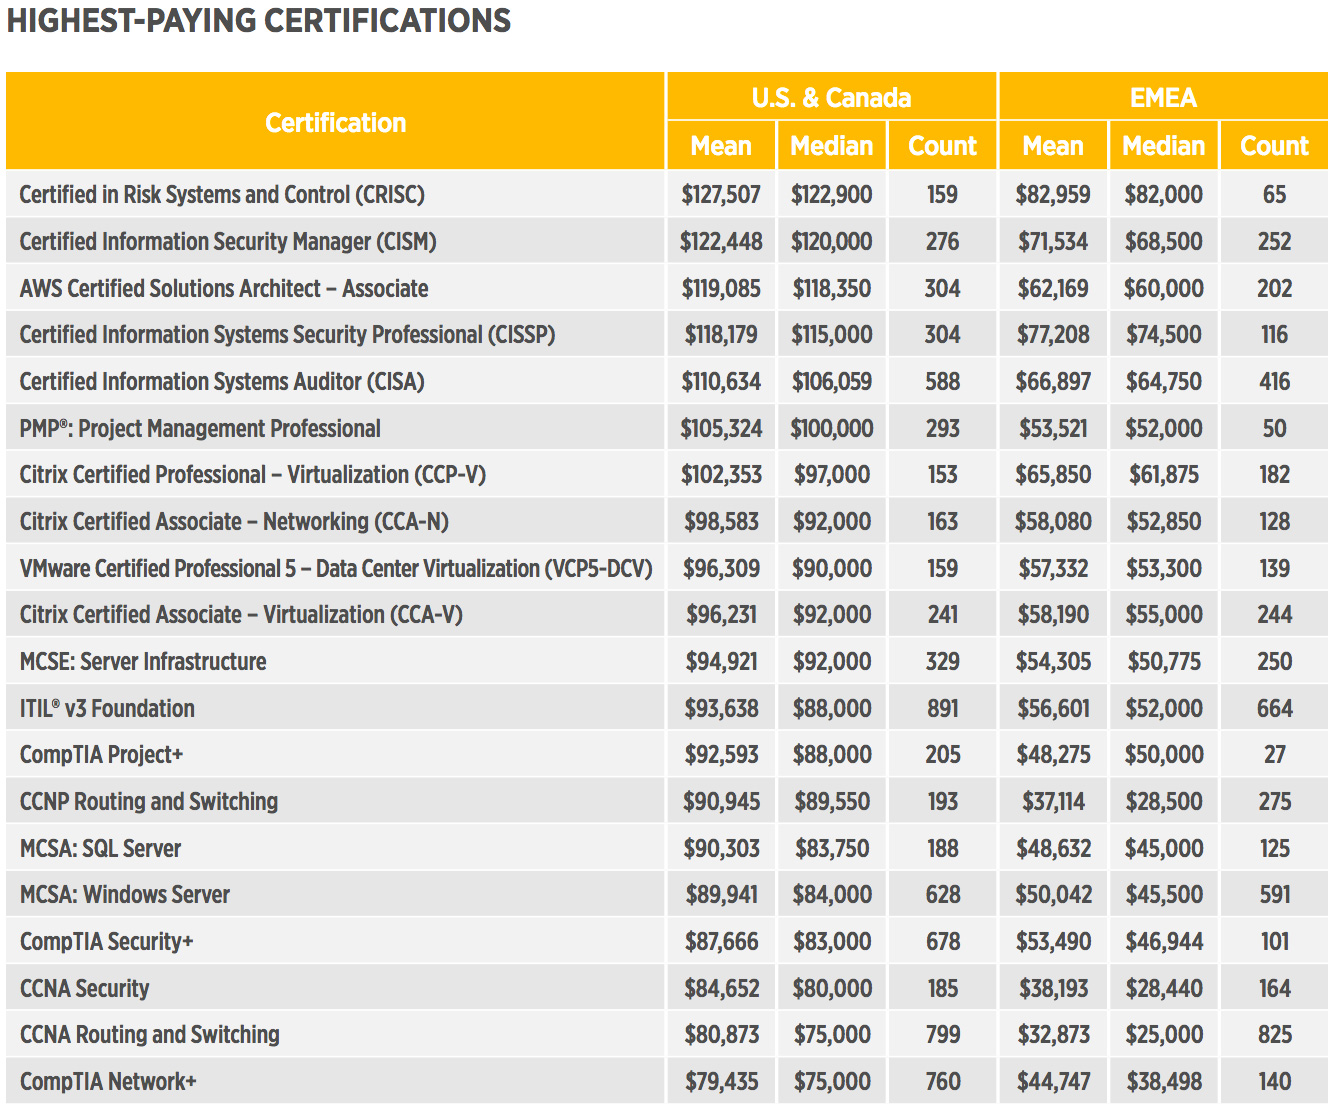 highest paying certifications